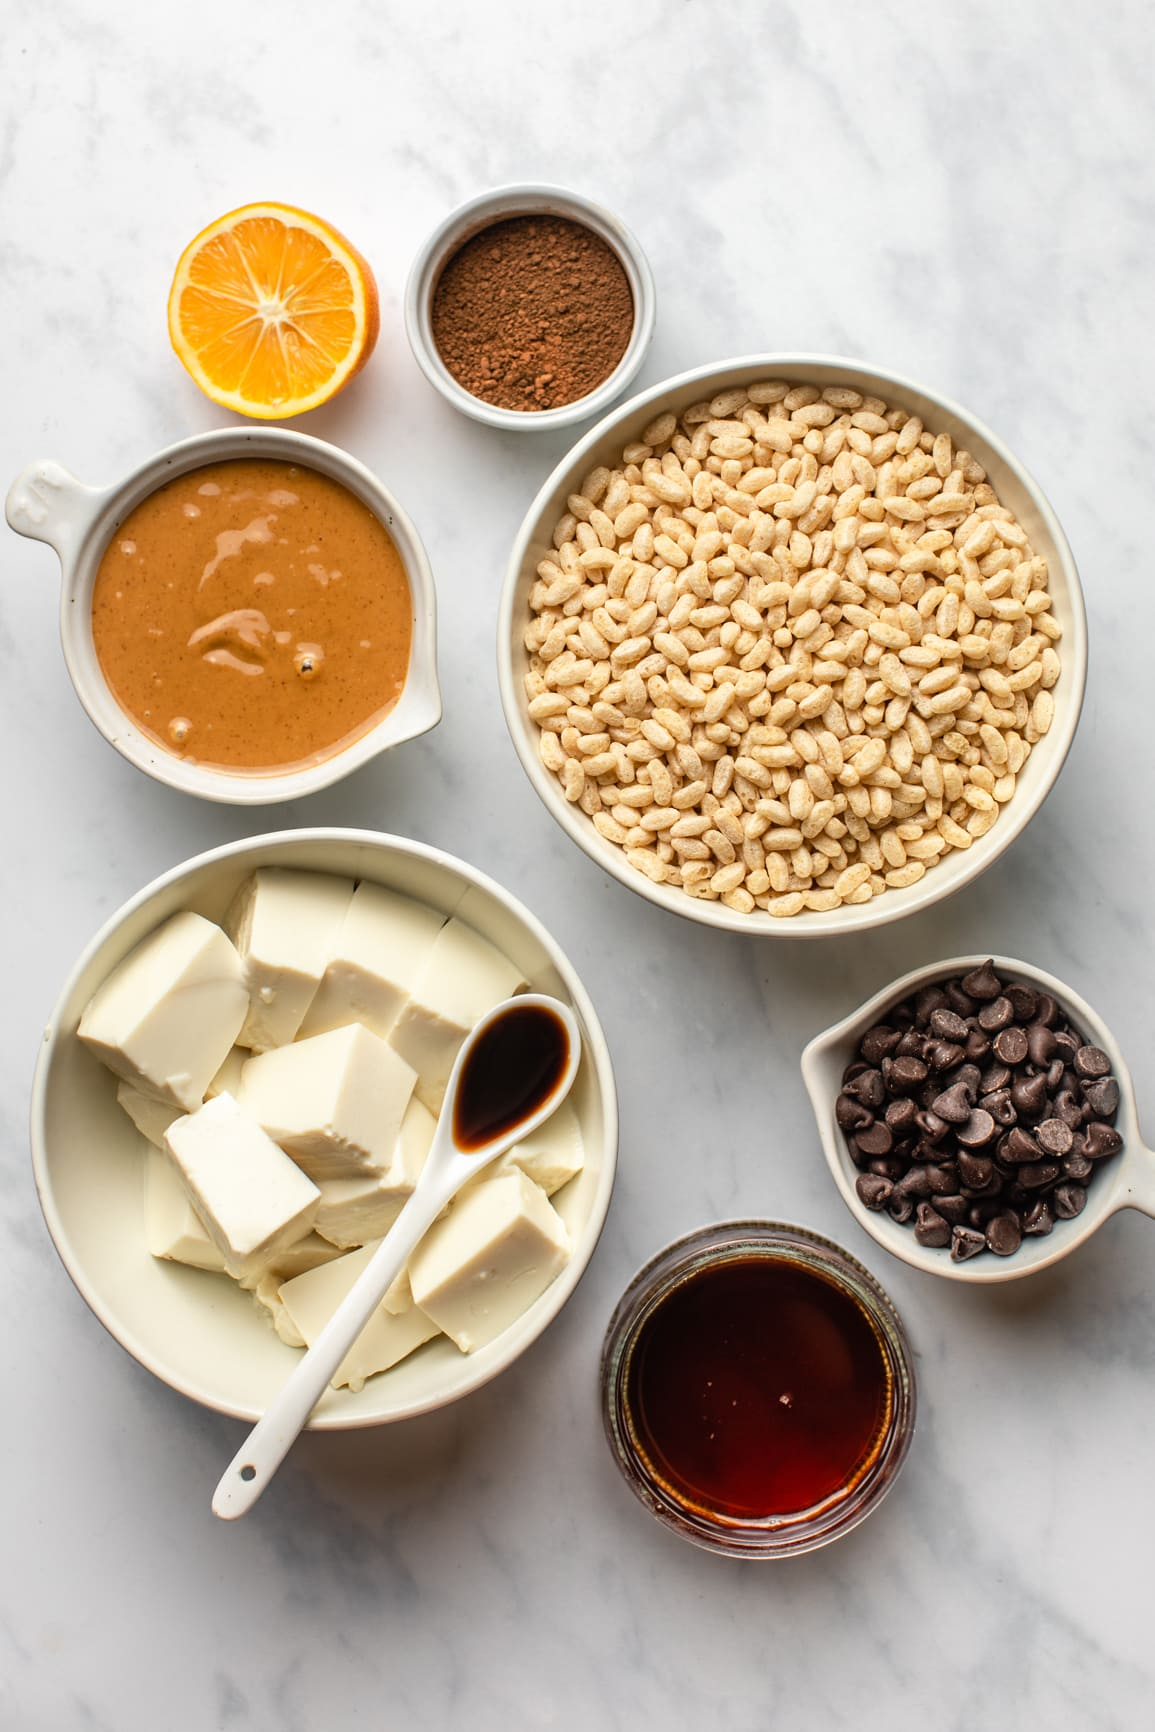 ingredients for no bake peanut butter cup pie in white bowls on marble background